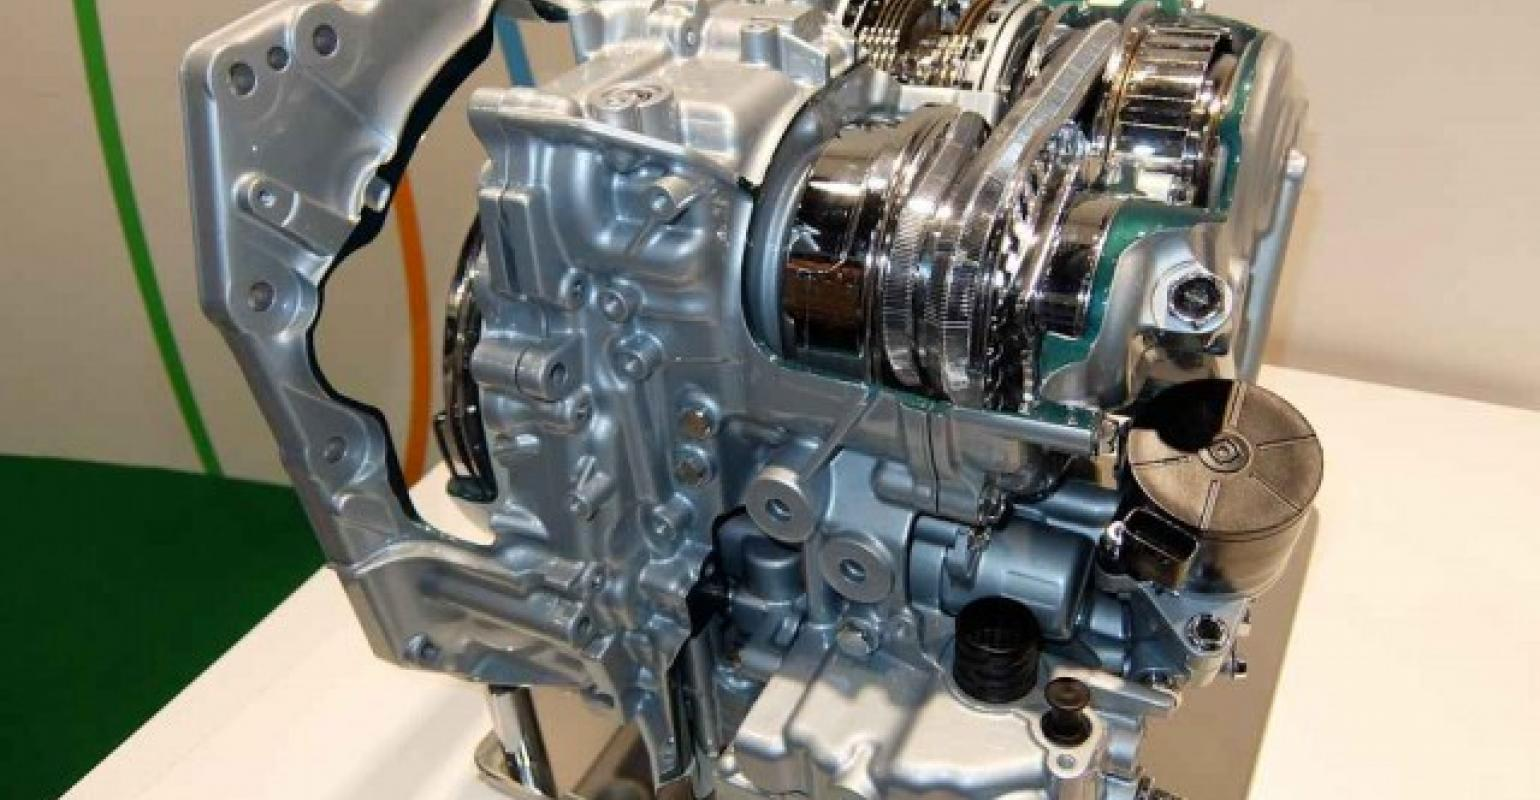 20+ Jatco Cvt Continuously Variable Transmission Pictures and Ideas